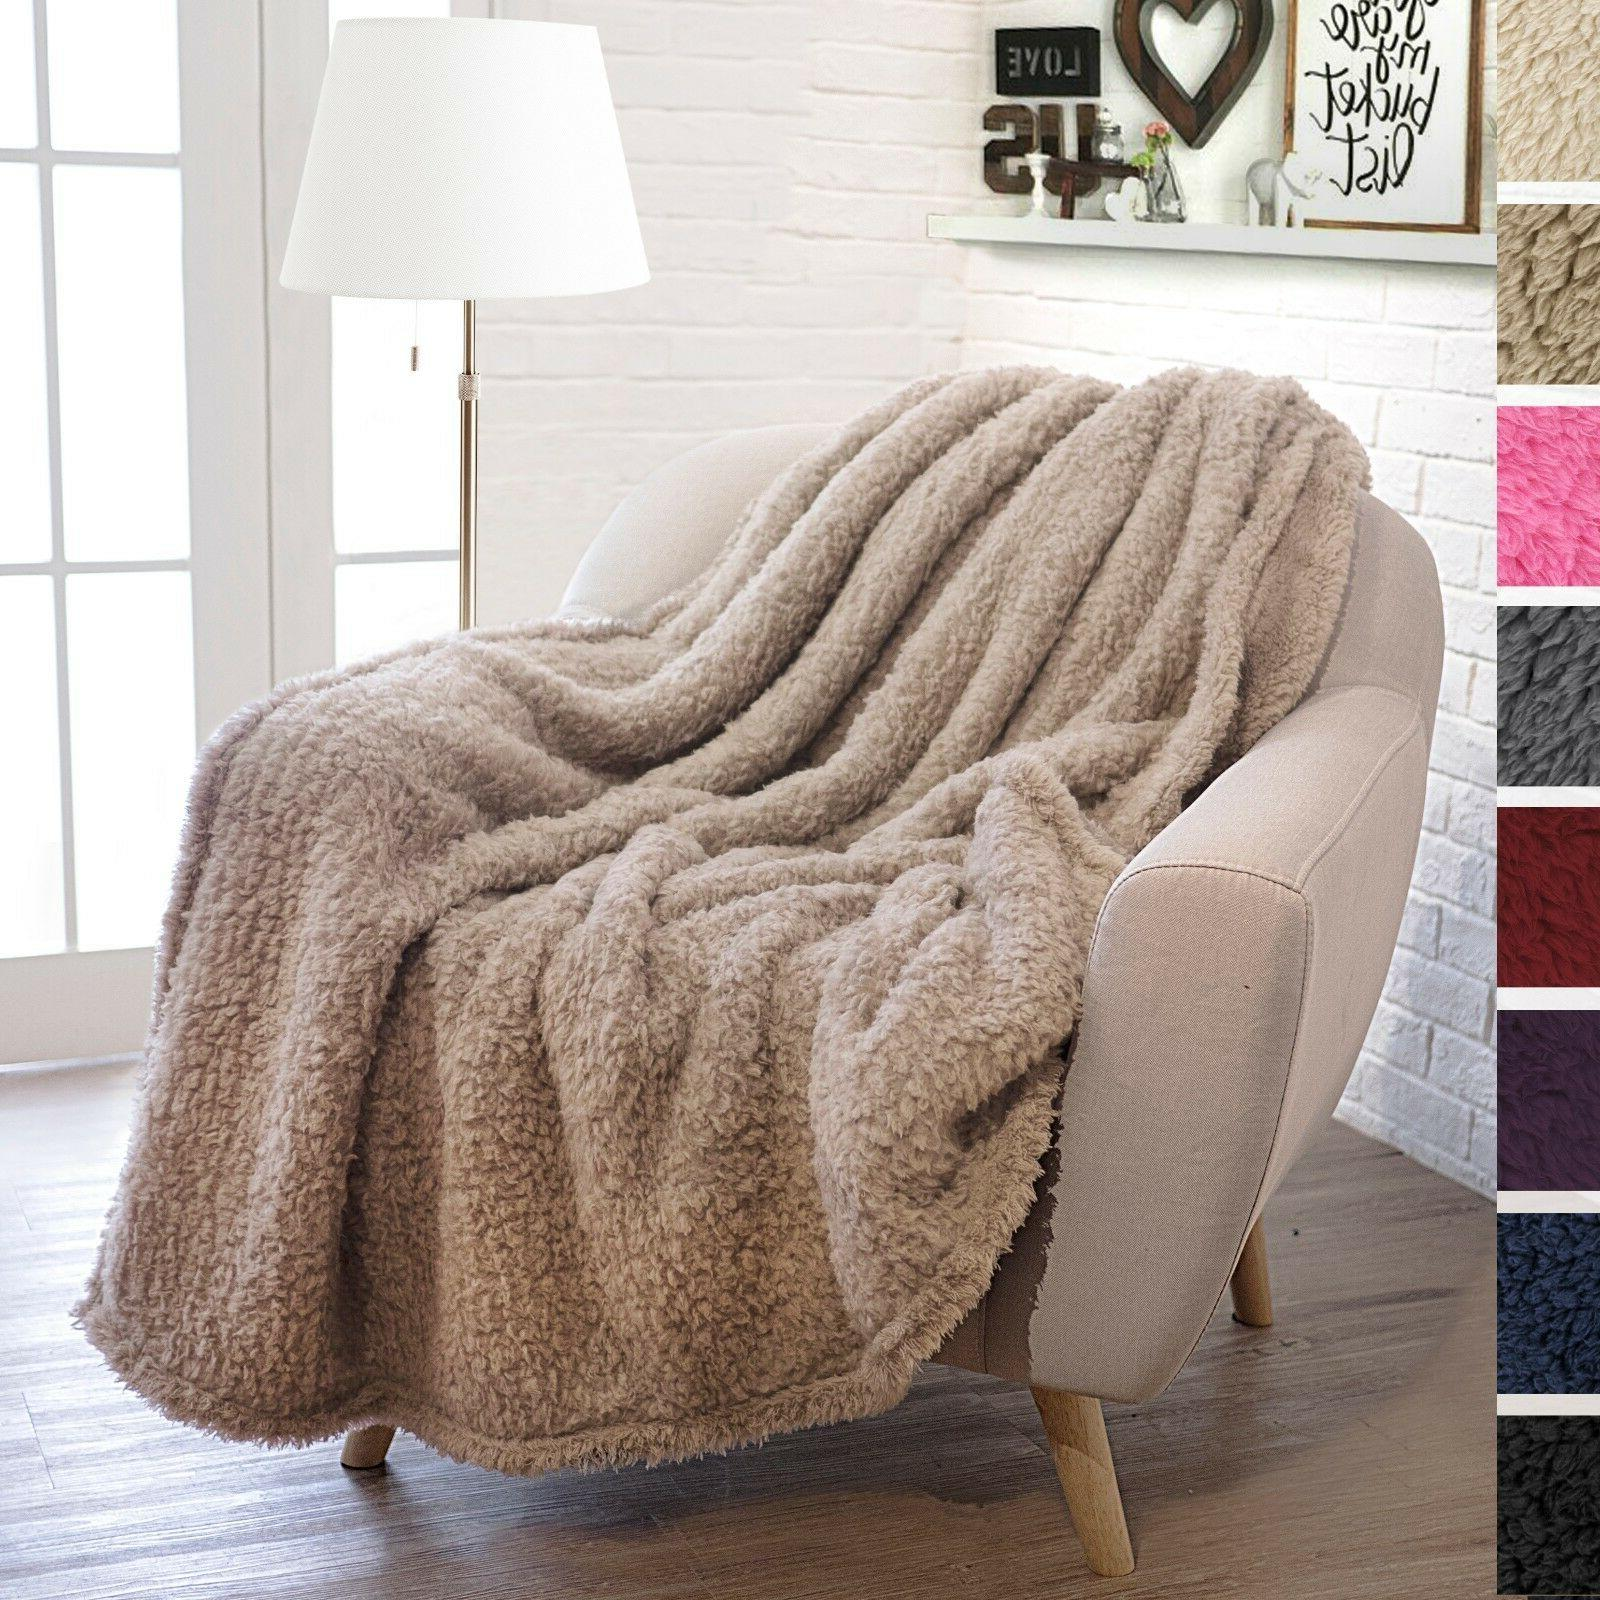 PAVILIA Fuzzy Sherpa Throw